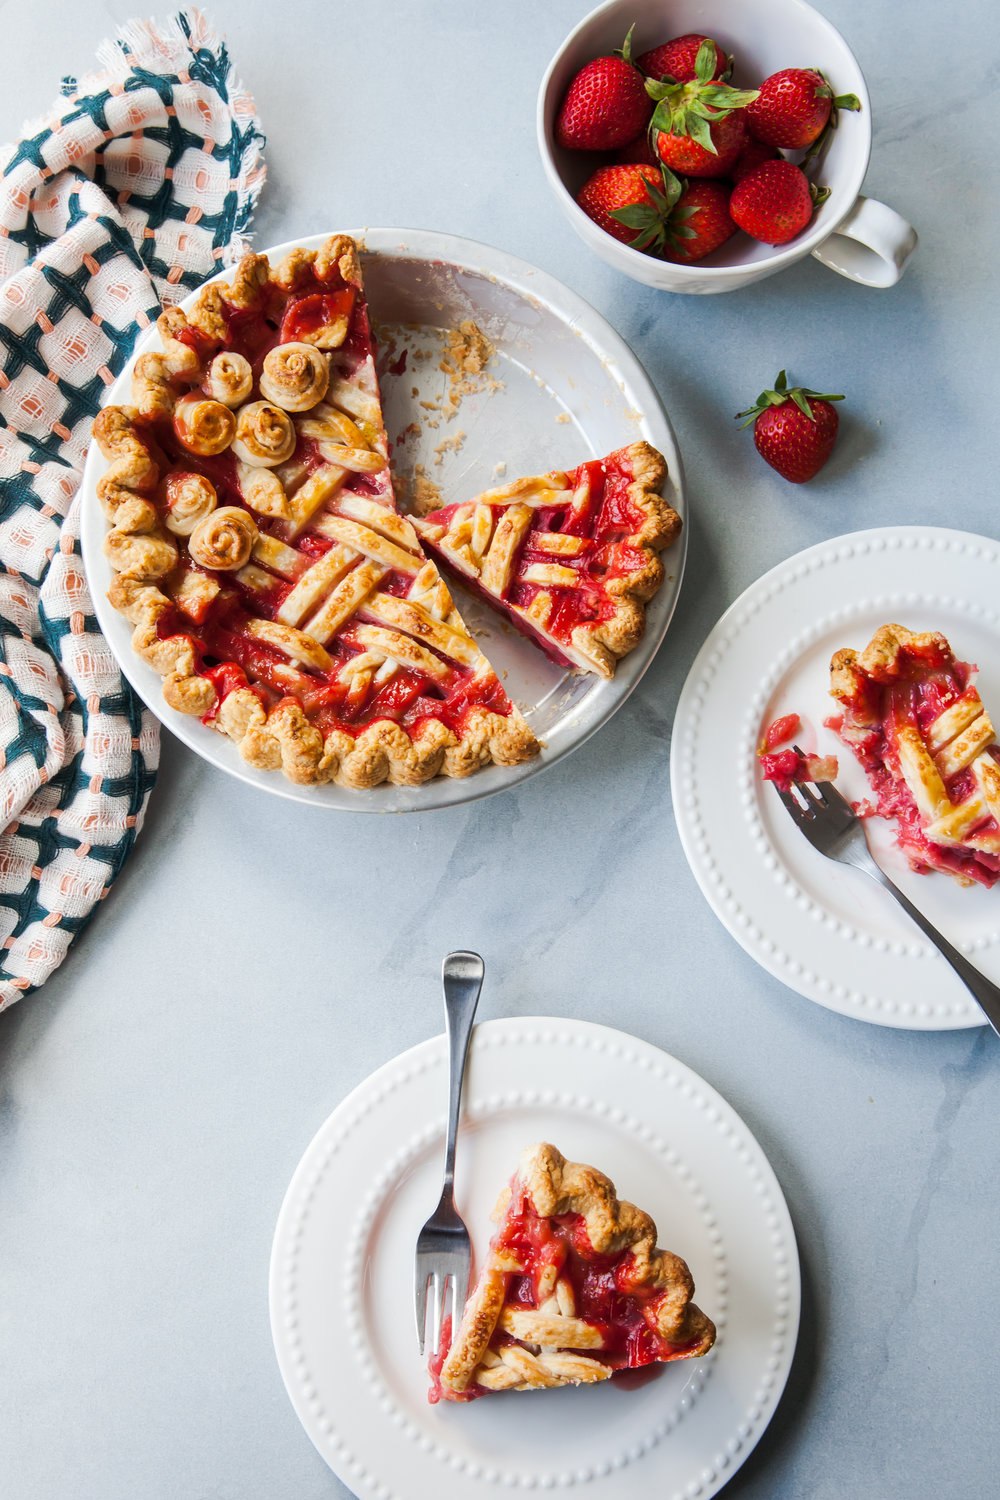 Citrus Strawberry Rhubarb Pie for Pi(e) Day March 14th